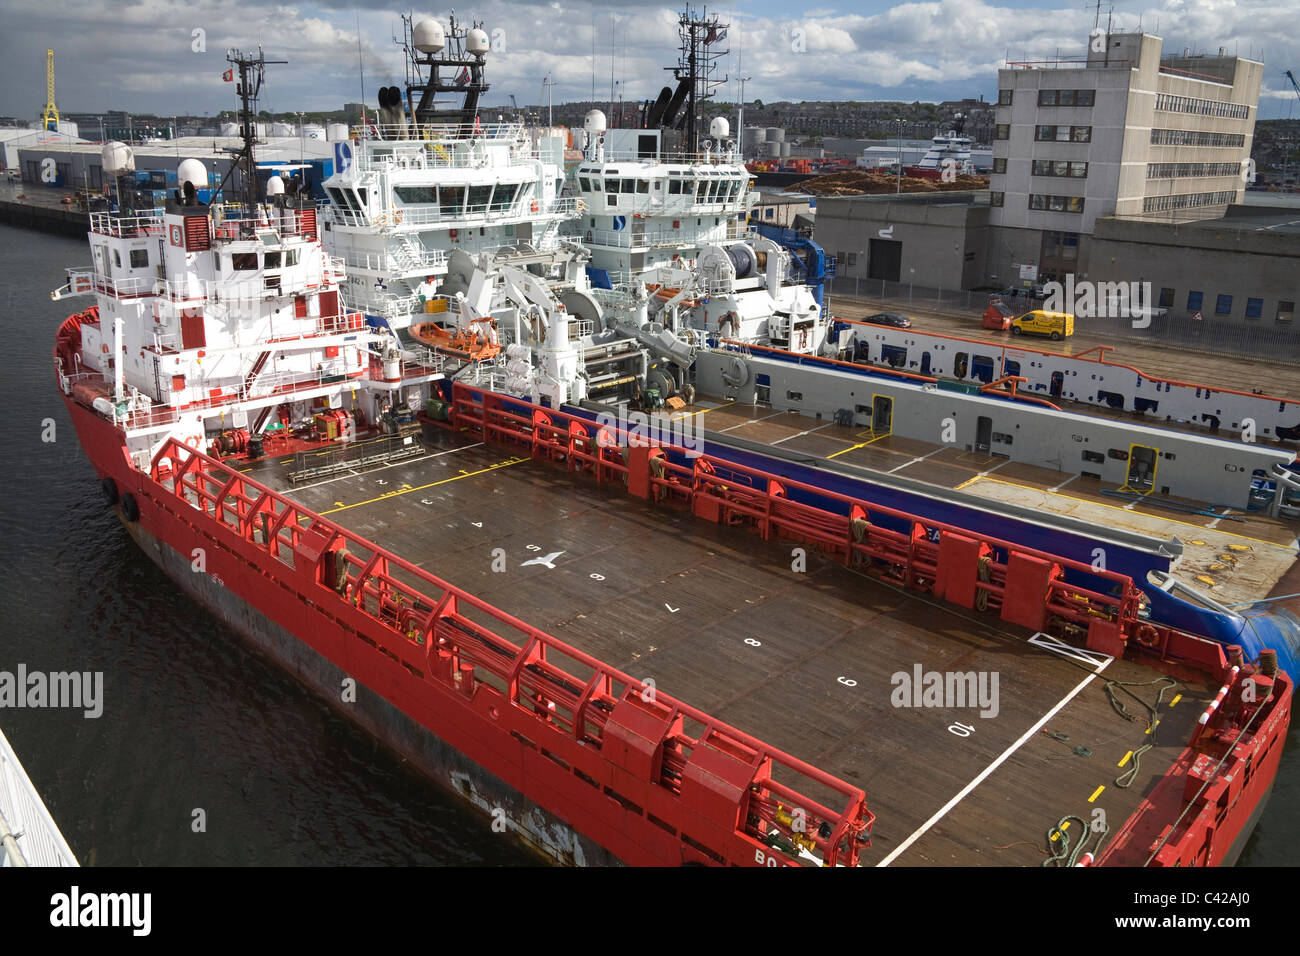 Aberdeen Scotland UK Looking down on three ships moored in harbour - Stock Image